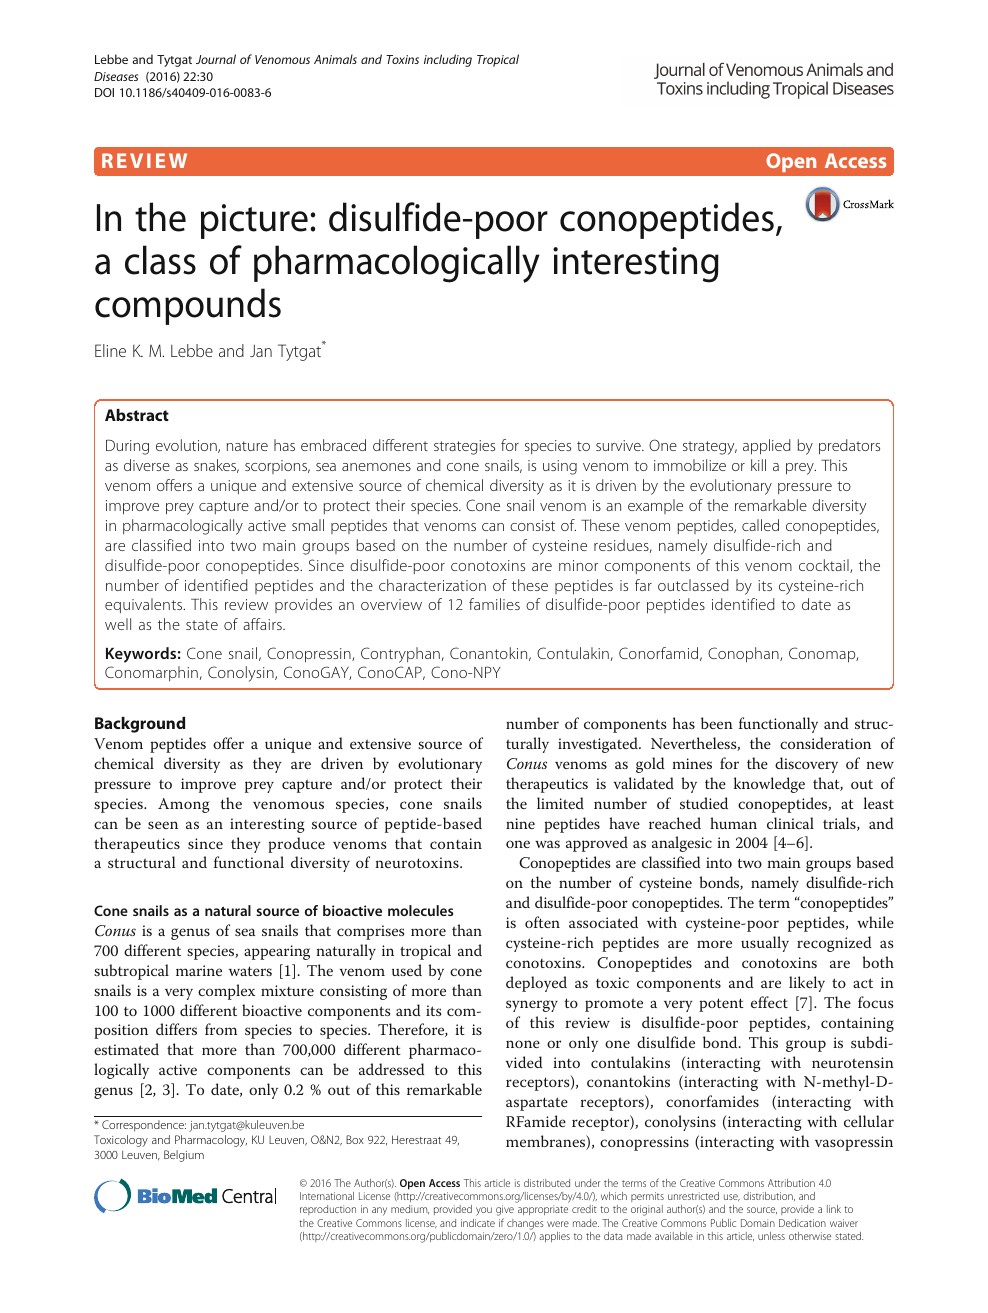 In the picture: disulfide-poor conopeptides, a class of